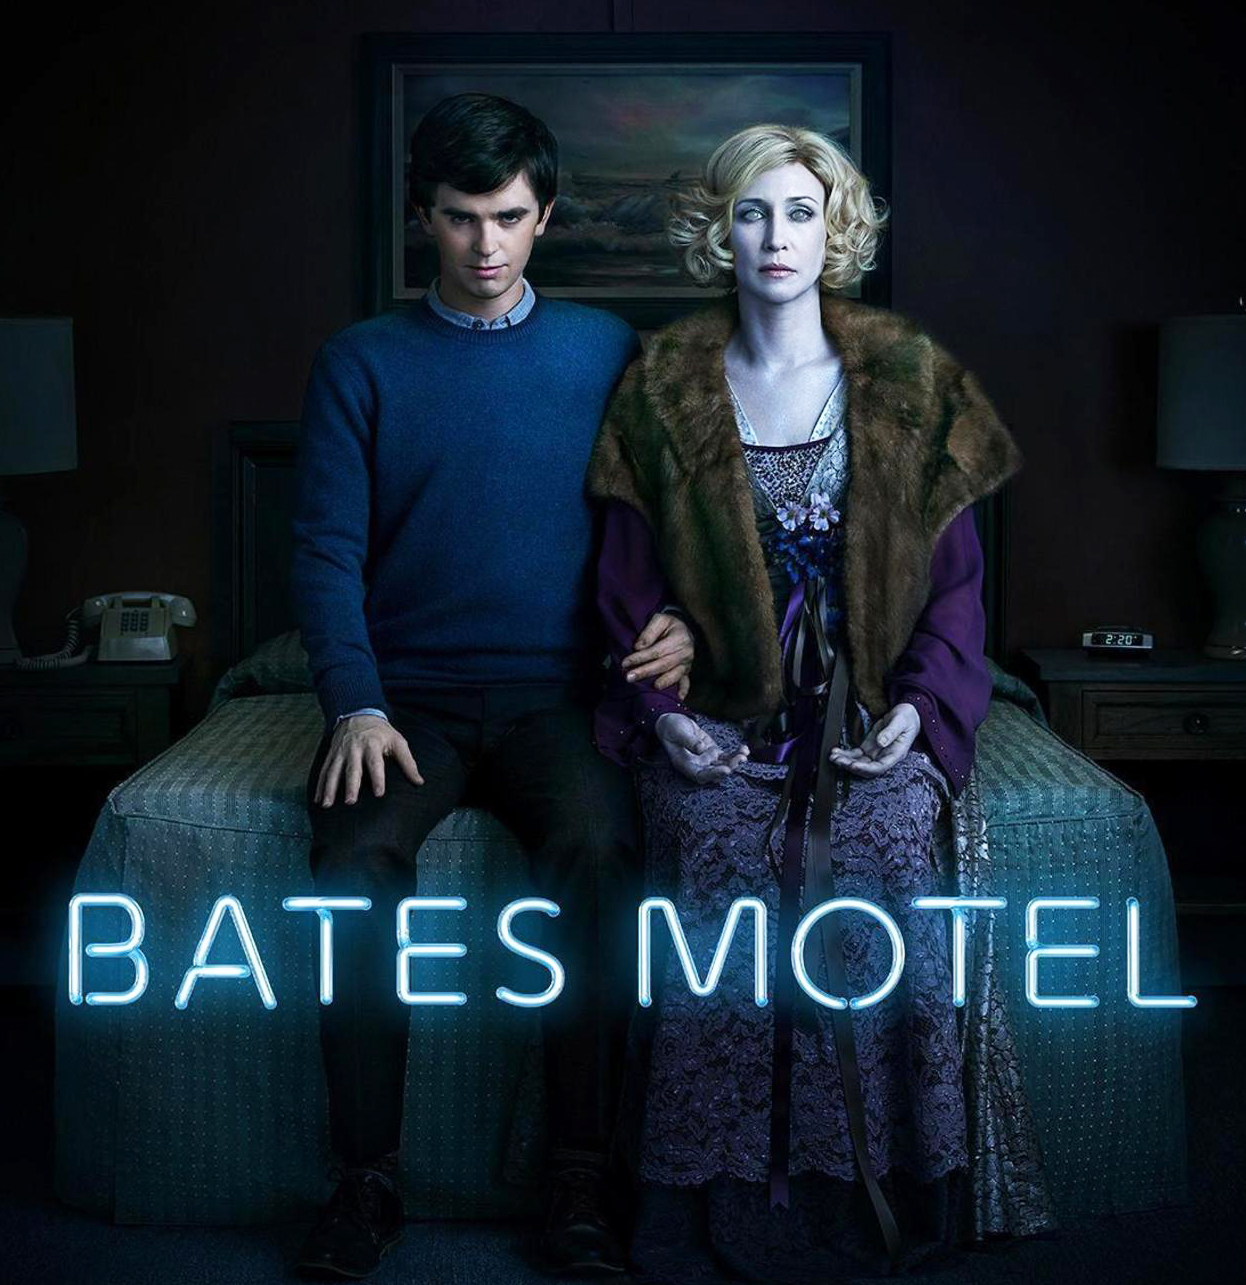 bates-motel-s5-bed-1484937475483_1280w.jpeg